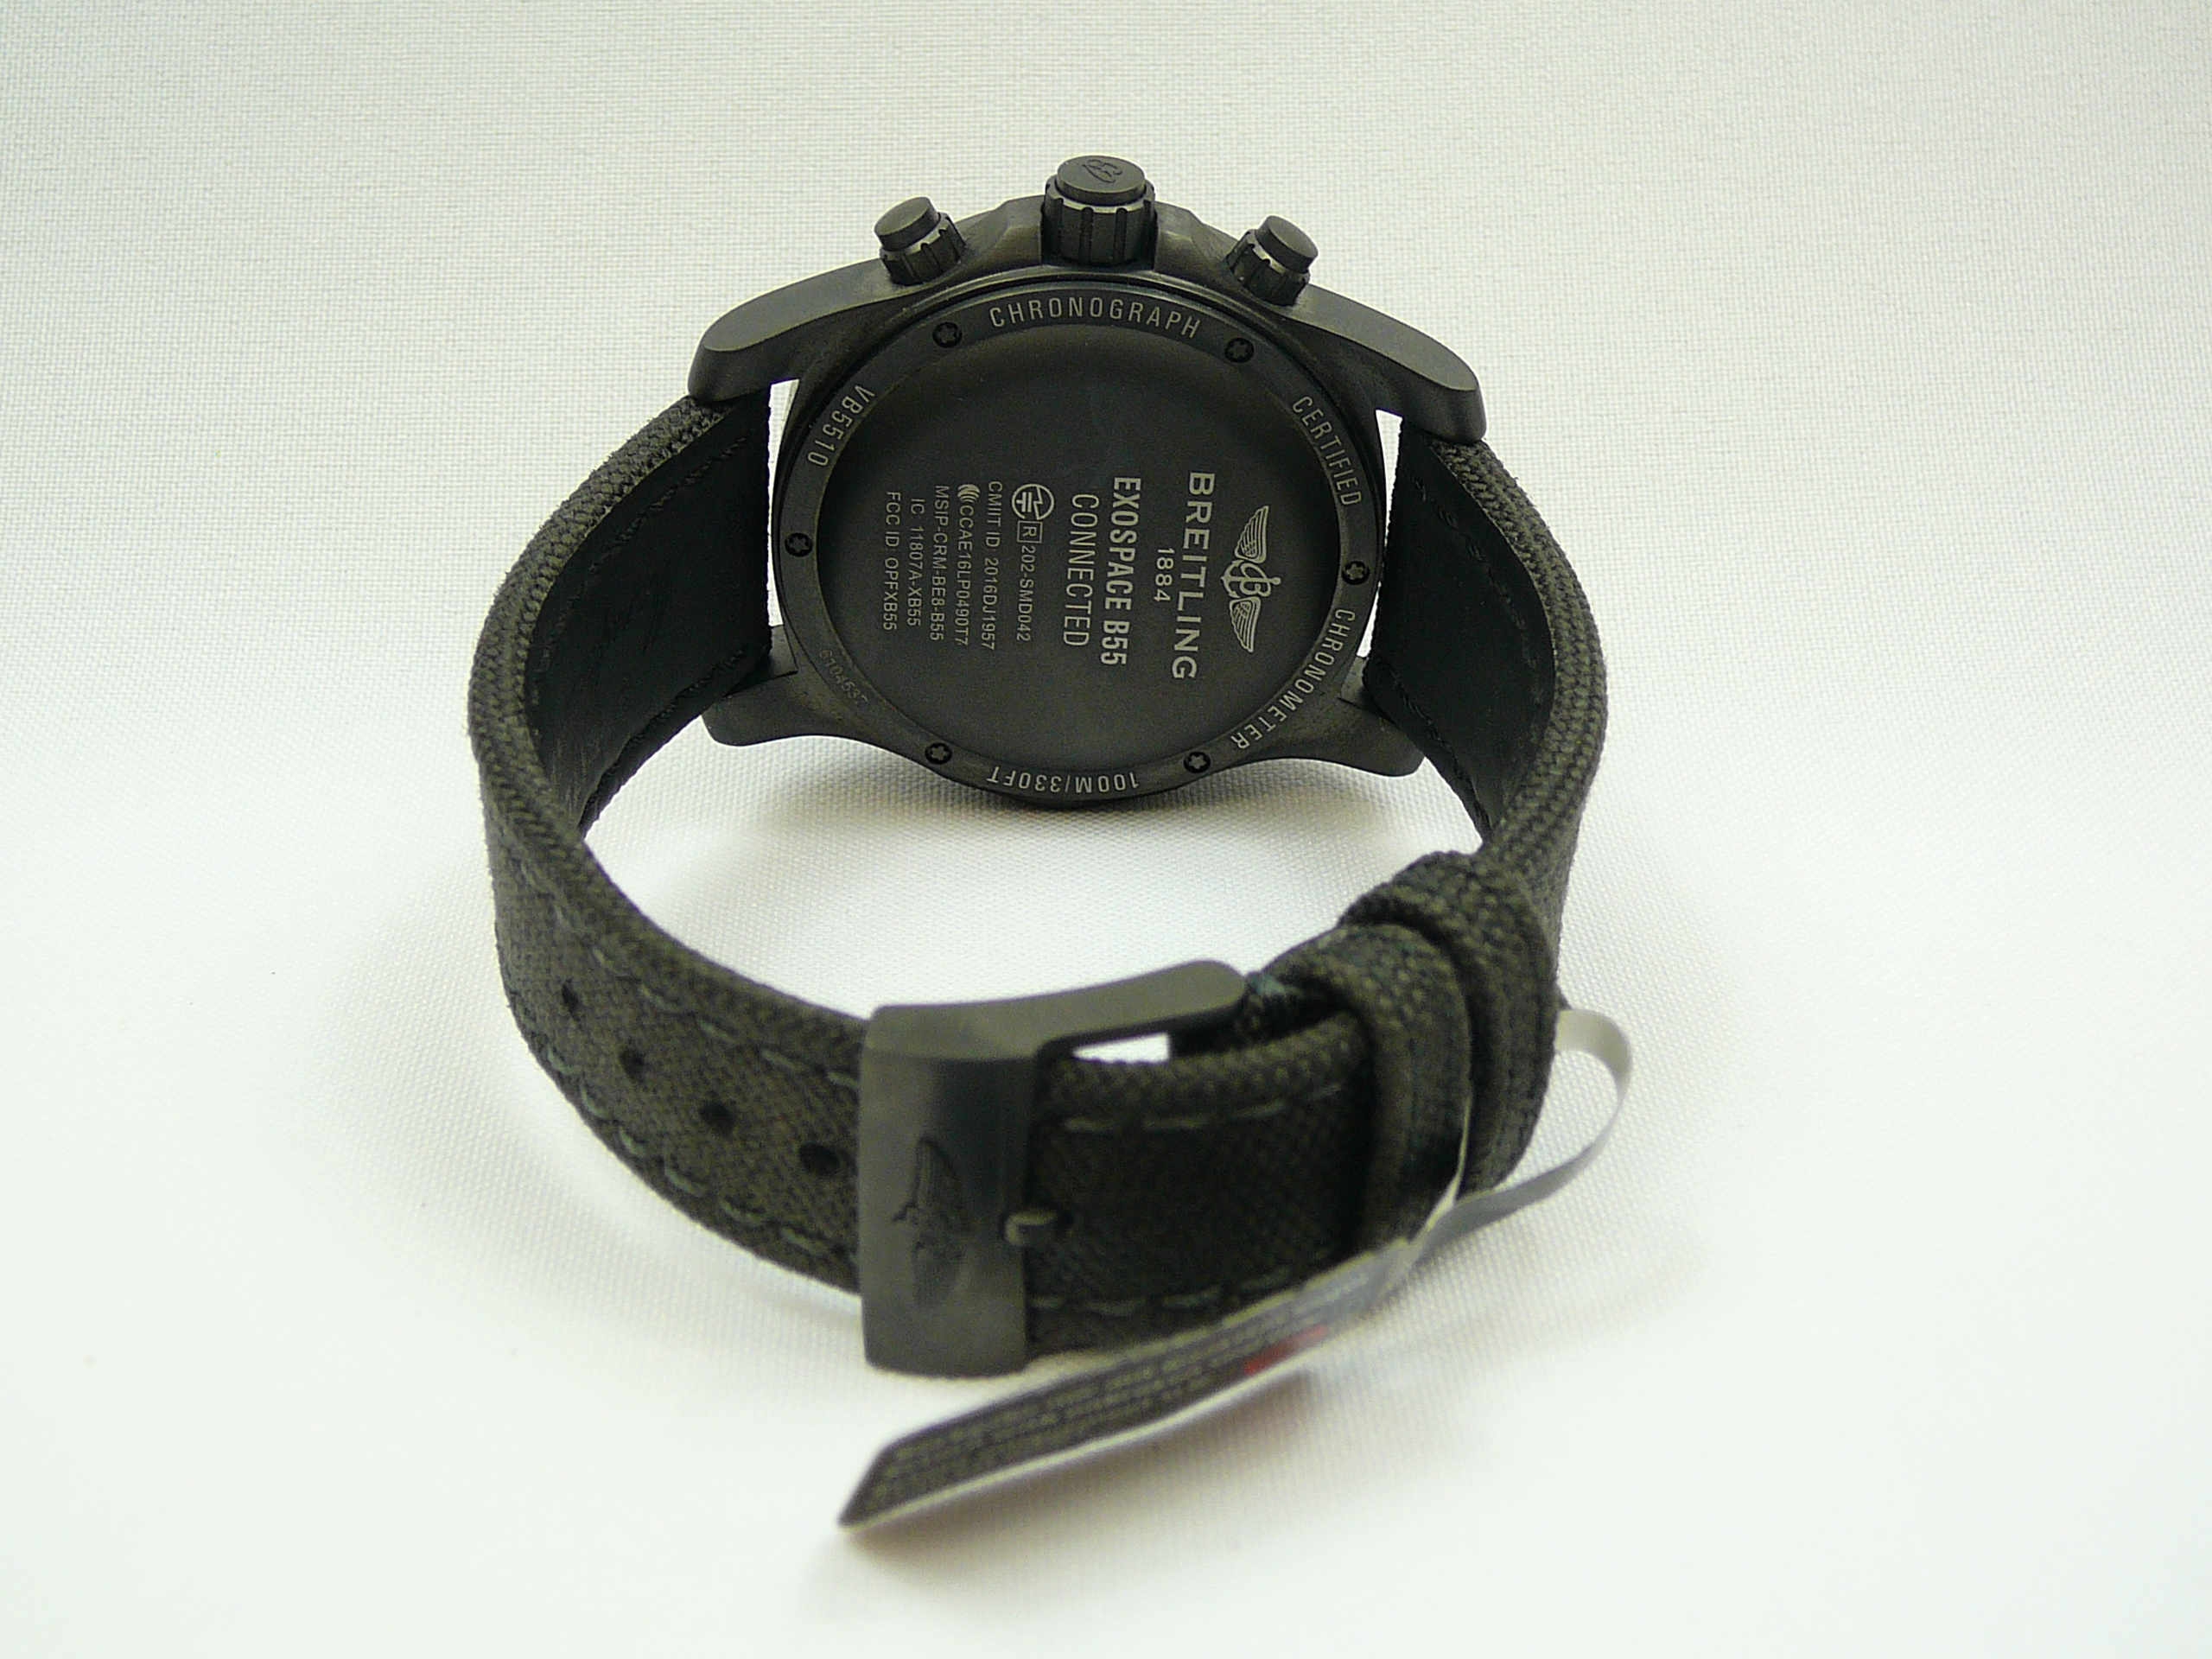 Gents Breitling Wrist Watch - Image 4 of 4